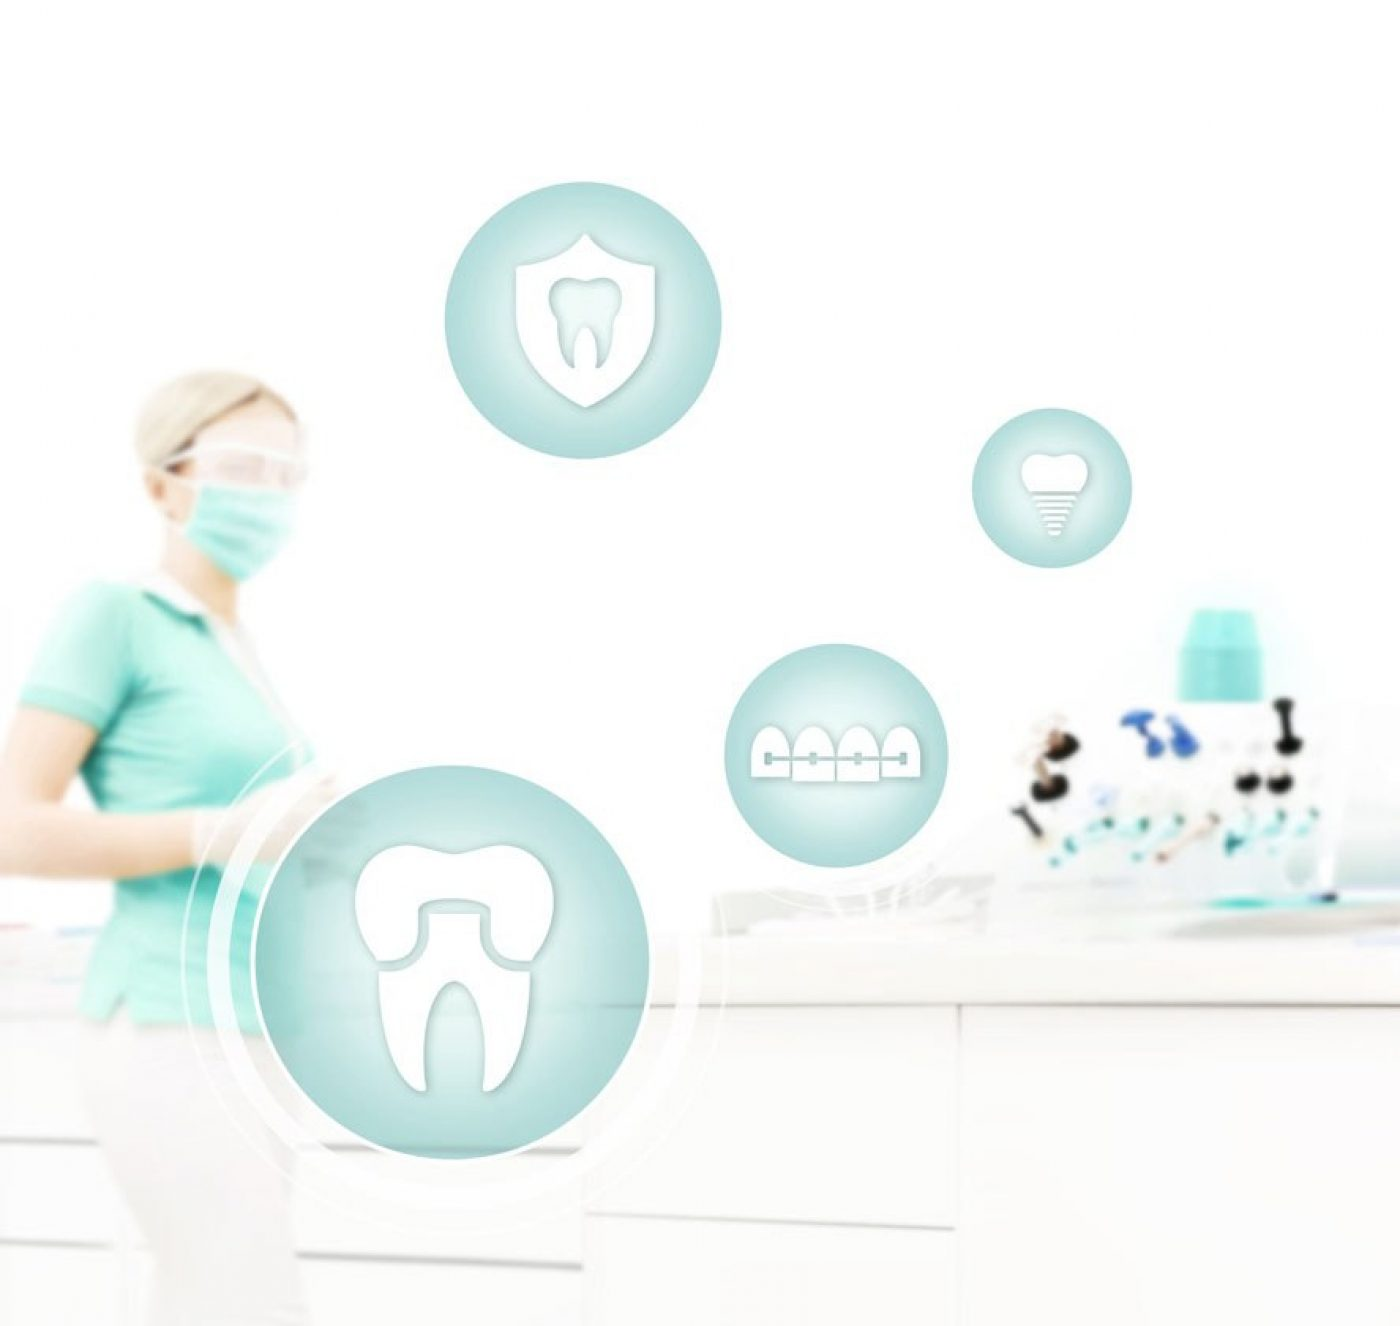 Longwell Green Advicecare Commondentalconditions